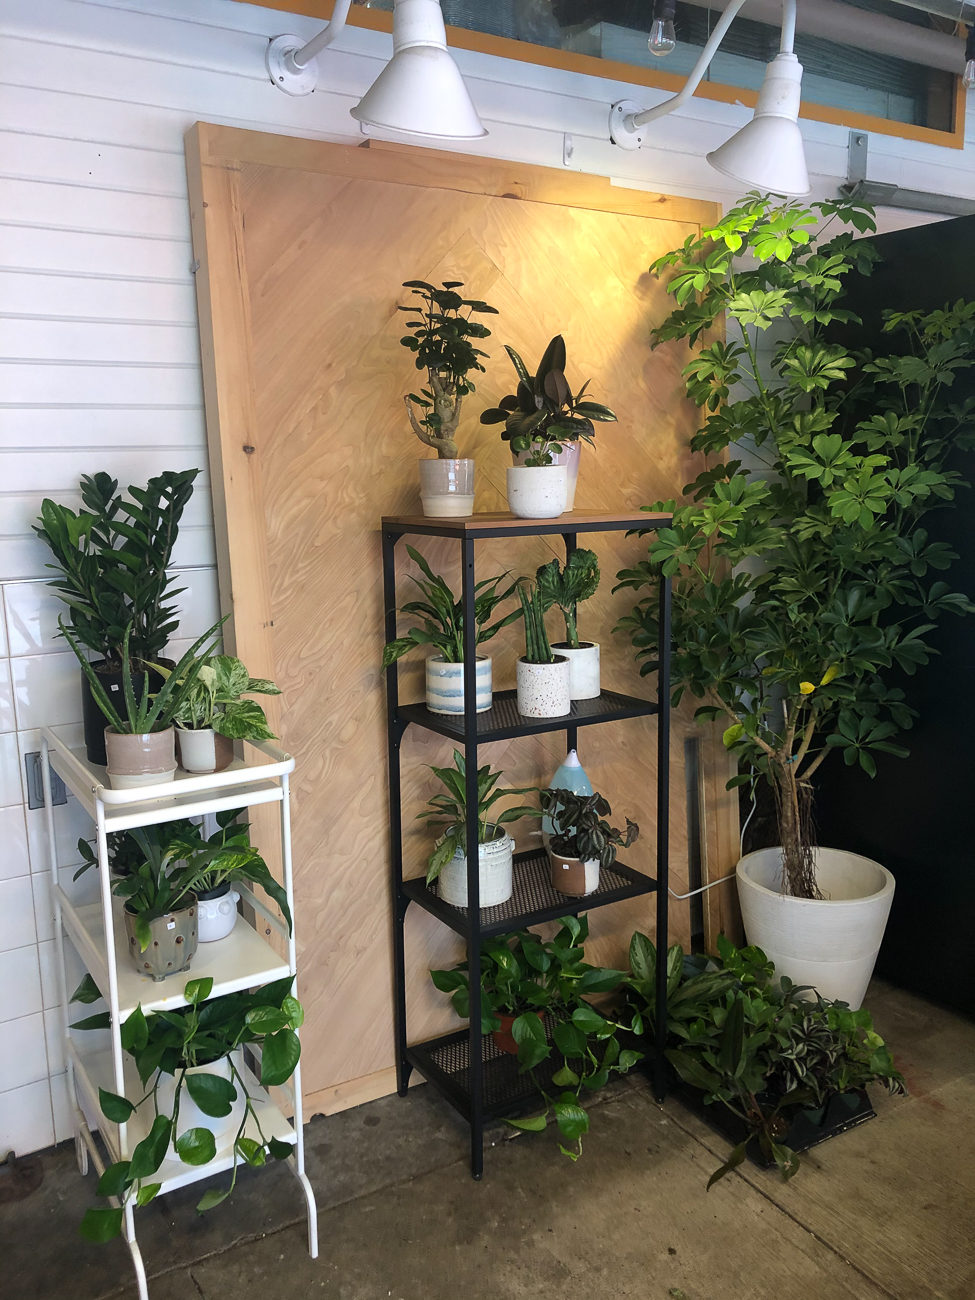 "Yuliya S. Bui (IG: @giaandtheblooms) from Mt. Auburn / ""I own Gia and the Blooms plant store, and my house is a refuge for plants that haven't been doing well in the shop. Once they've become part of the family and I found a perfect spot for them on one of many plant shelves in my house, there is no going back."" BUSINESS: Gia and the Blooms at 114 E. 13th Street in Over-the-Rhine / Image courtesy of Yuliya S. Bui // Published: 6.13.20"